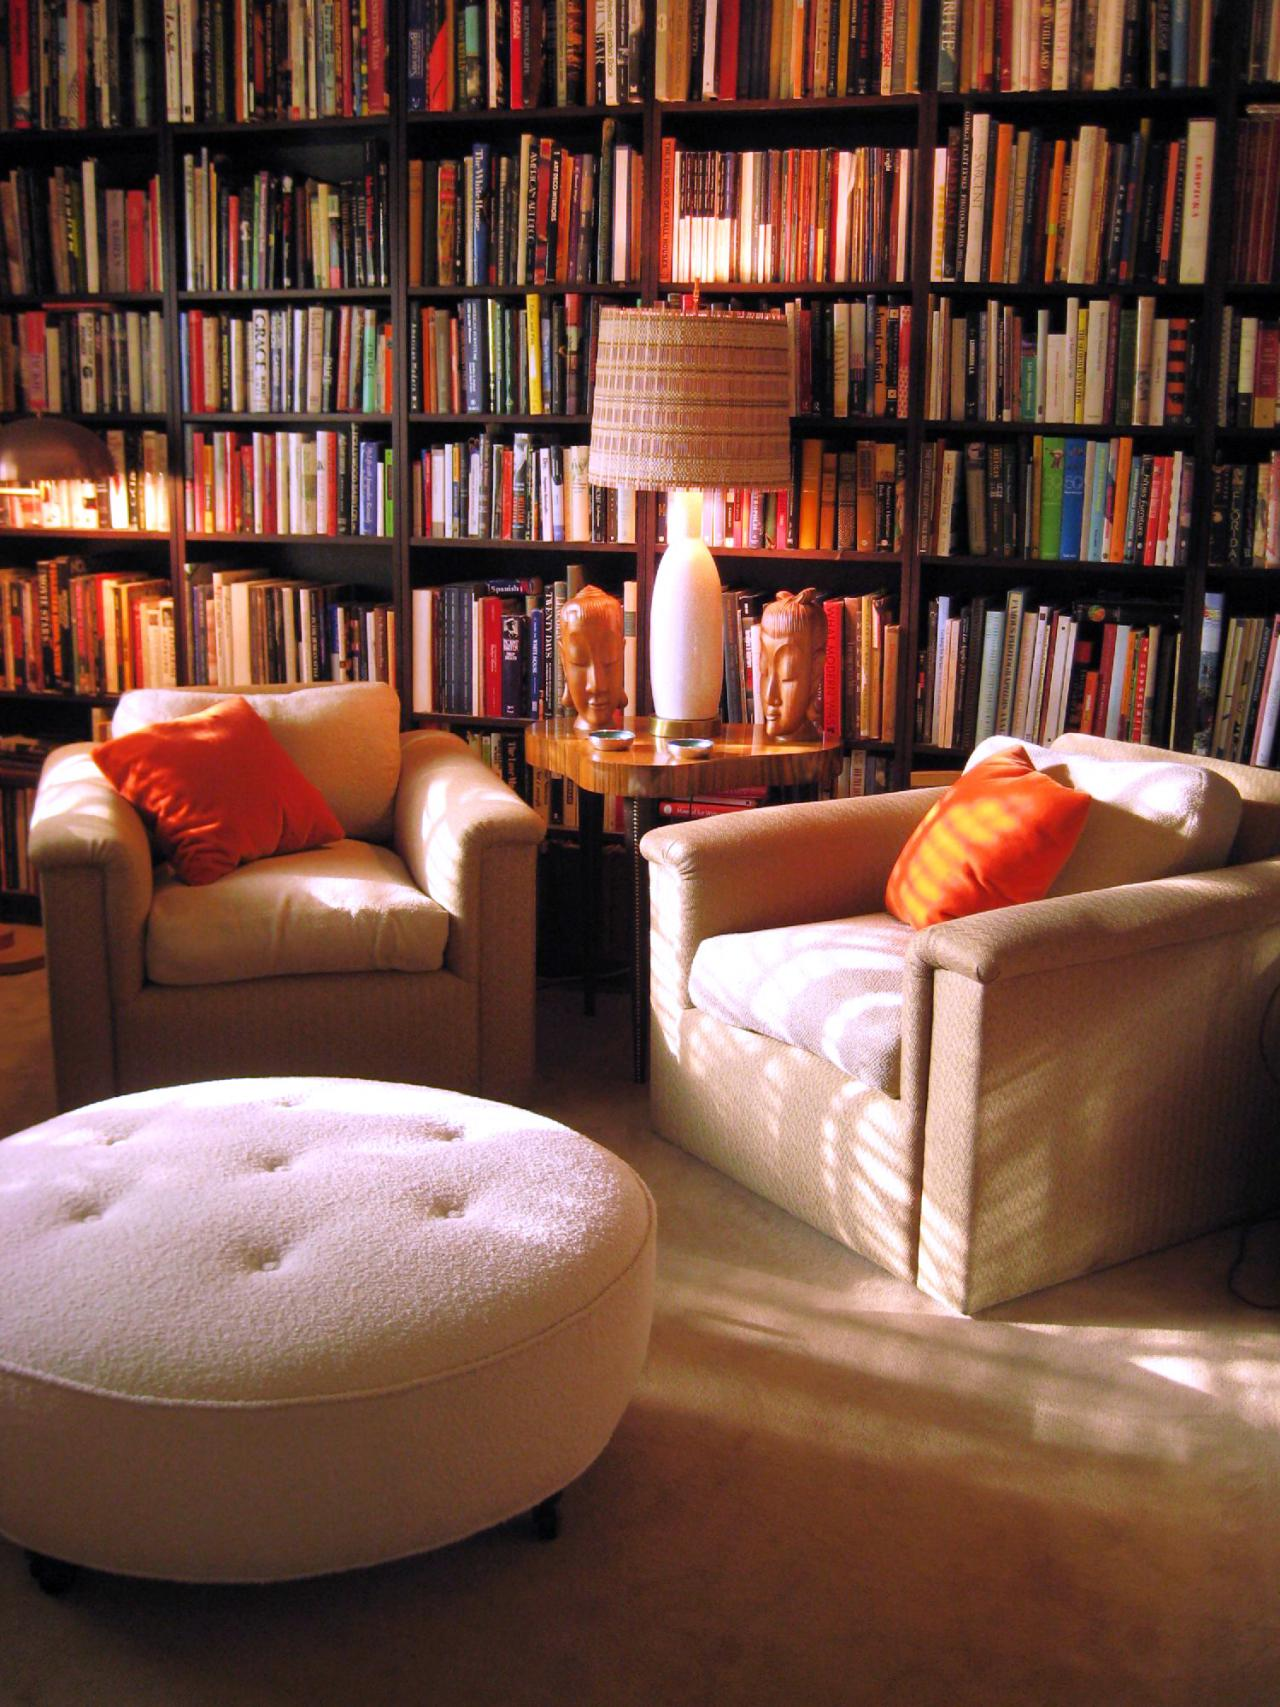 Home library lighting Bedroom Chairs Pillows Rug Lamp Books Bookshelf Library Homesfeed Home Library Design Homesfeed